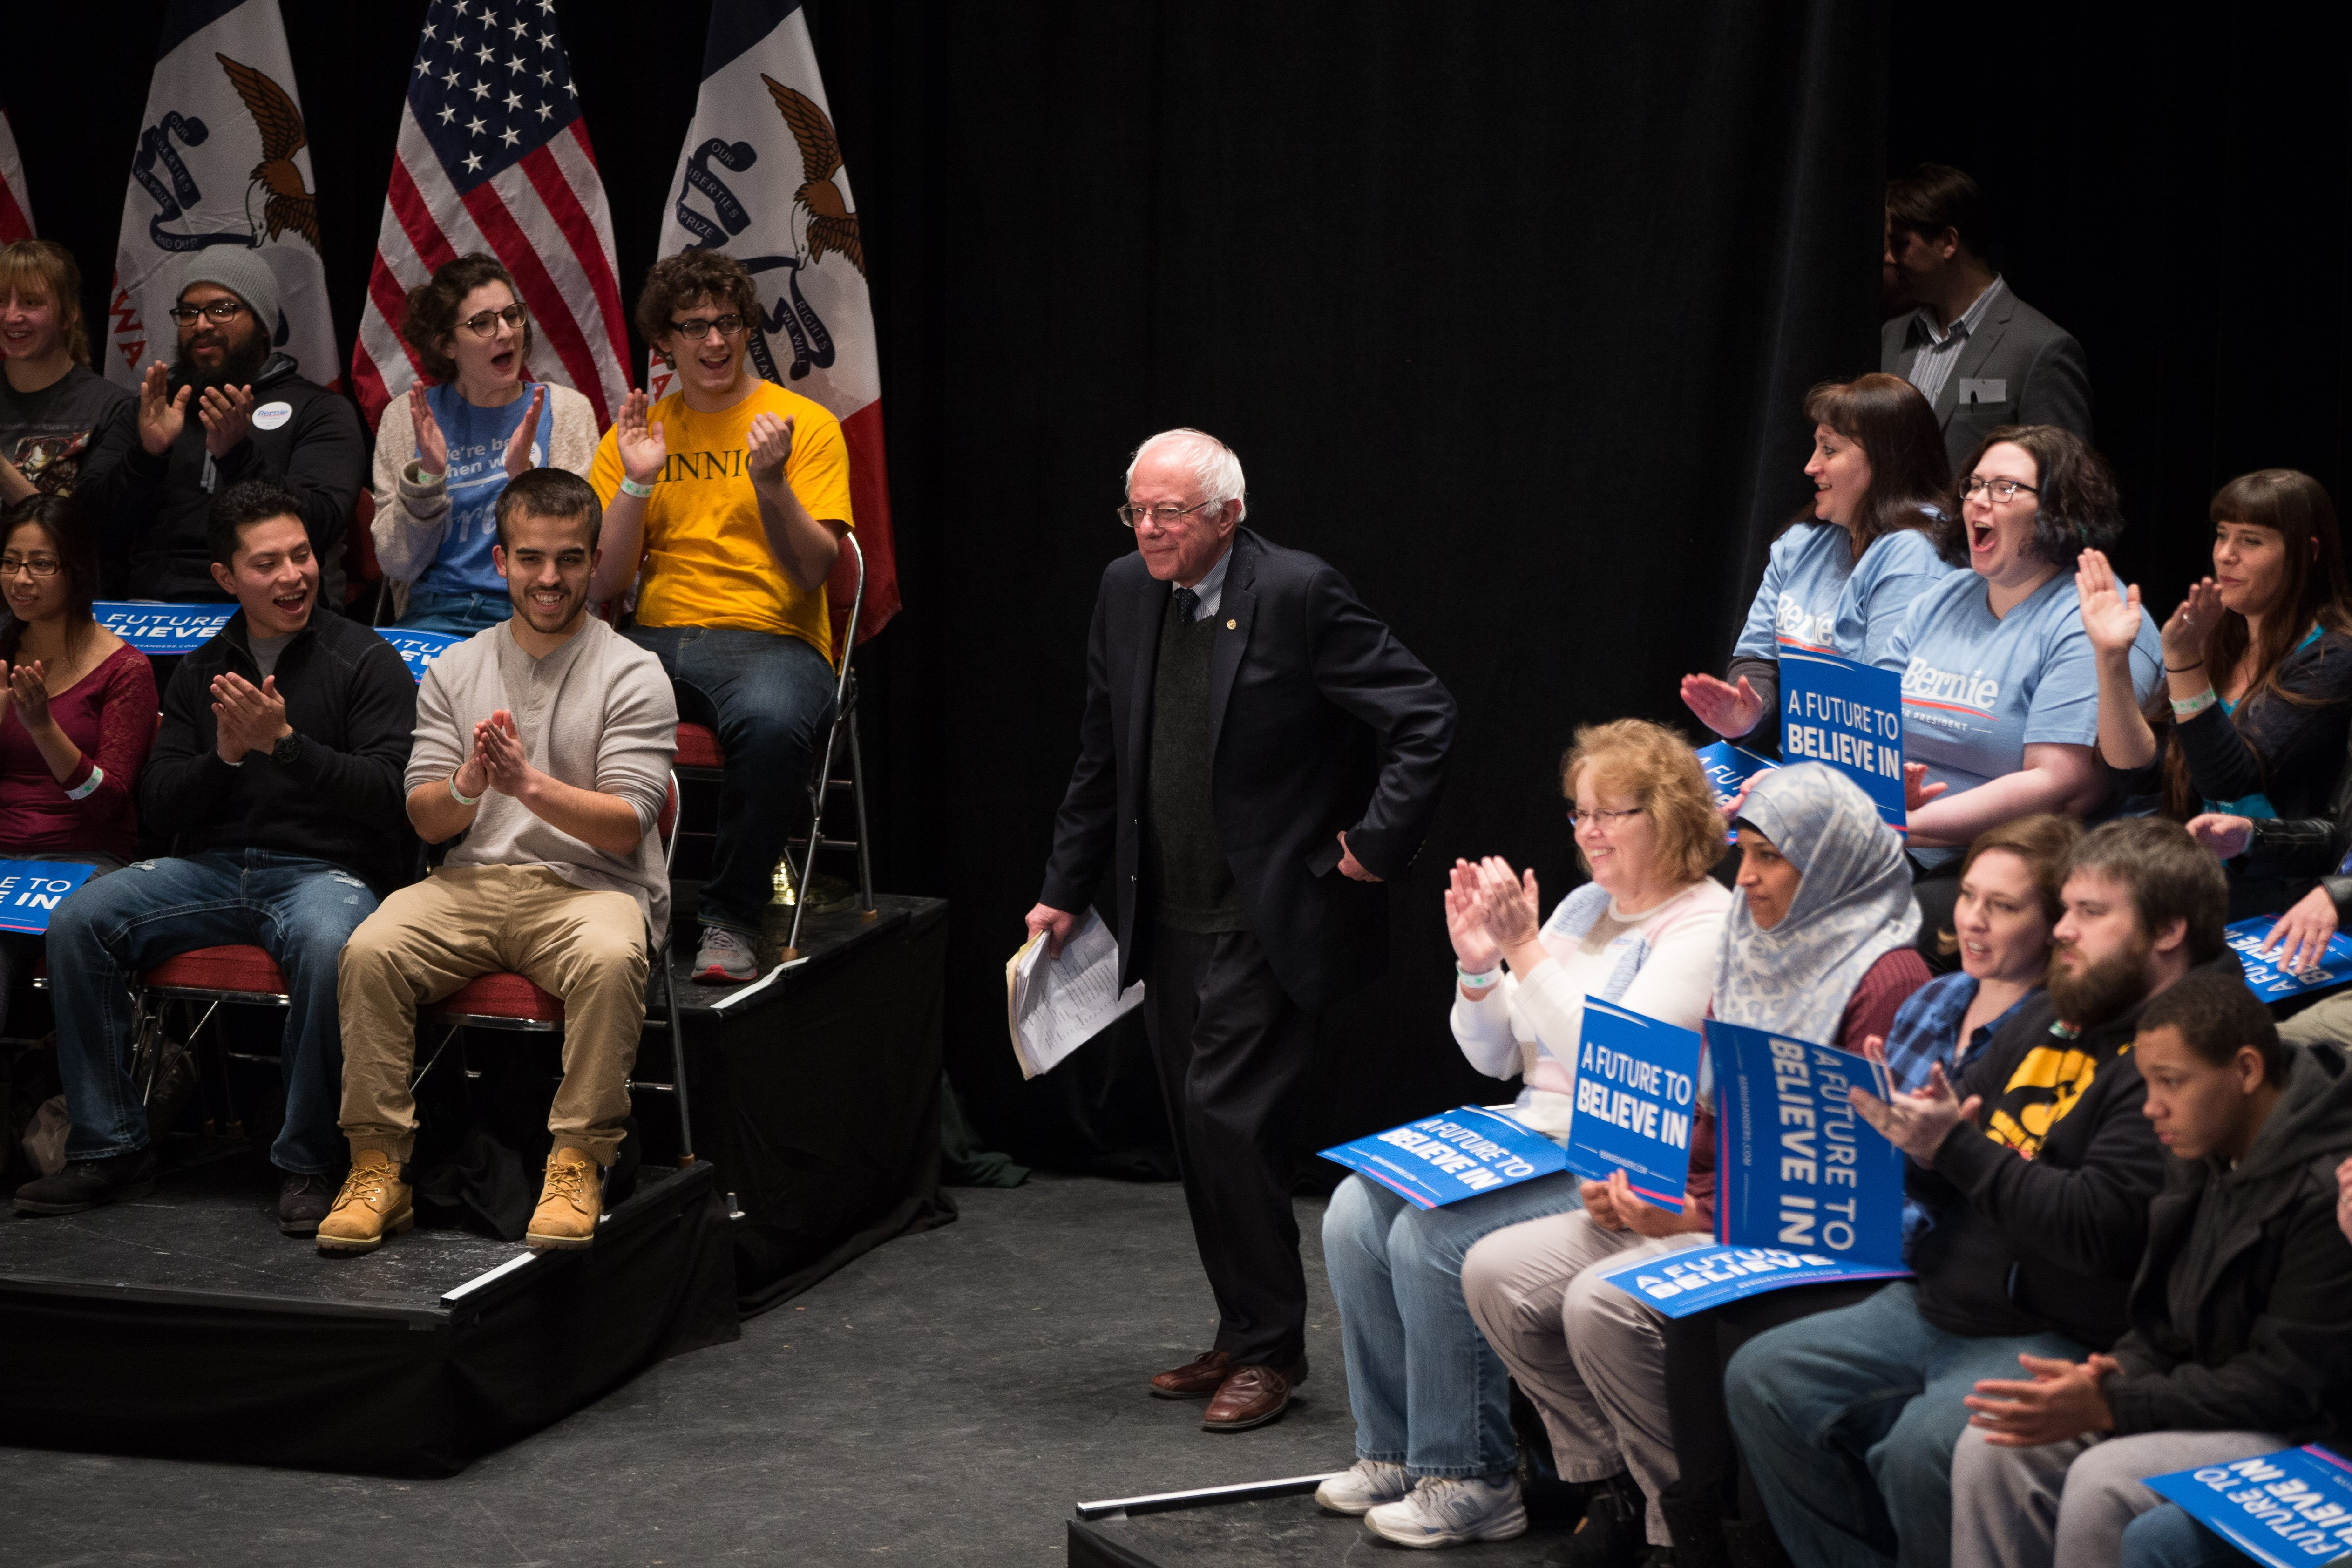 Democratic presidential candidate Sen. Bernie Sanders, I-Vt., takes the stage to speak at a town hall at the Orpheum Theater in Sioux City, Iowa on Jan. 19, 2016.